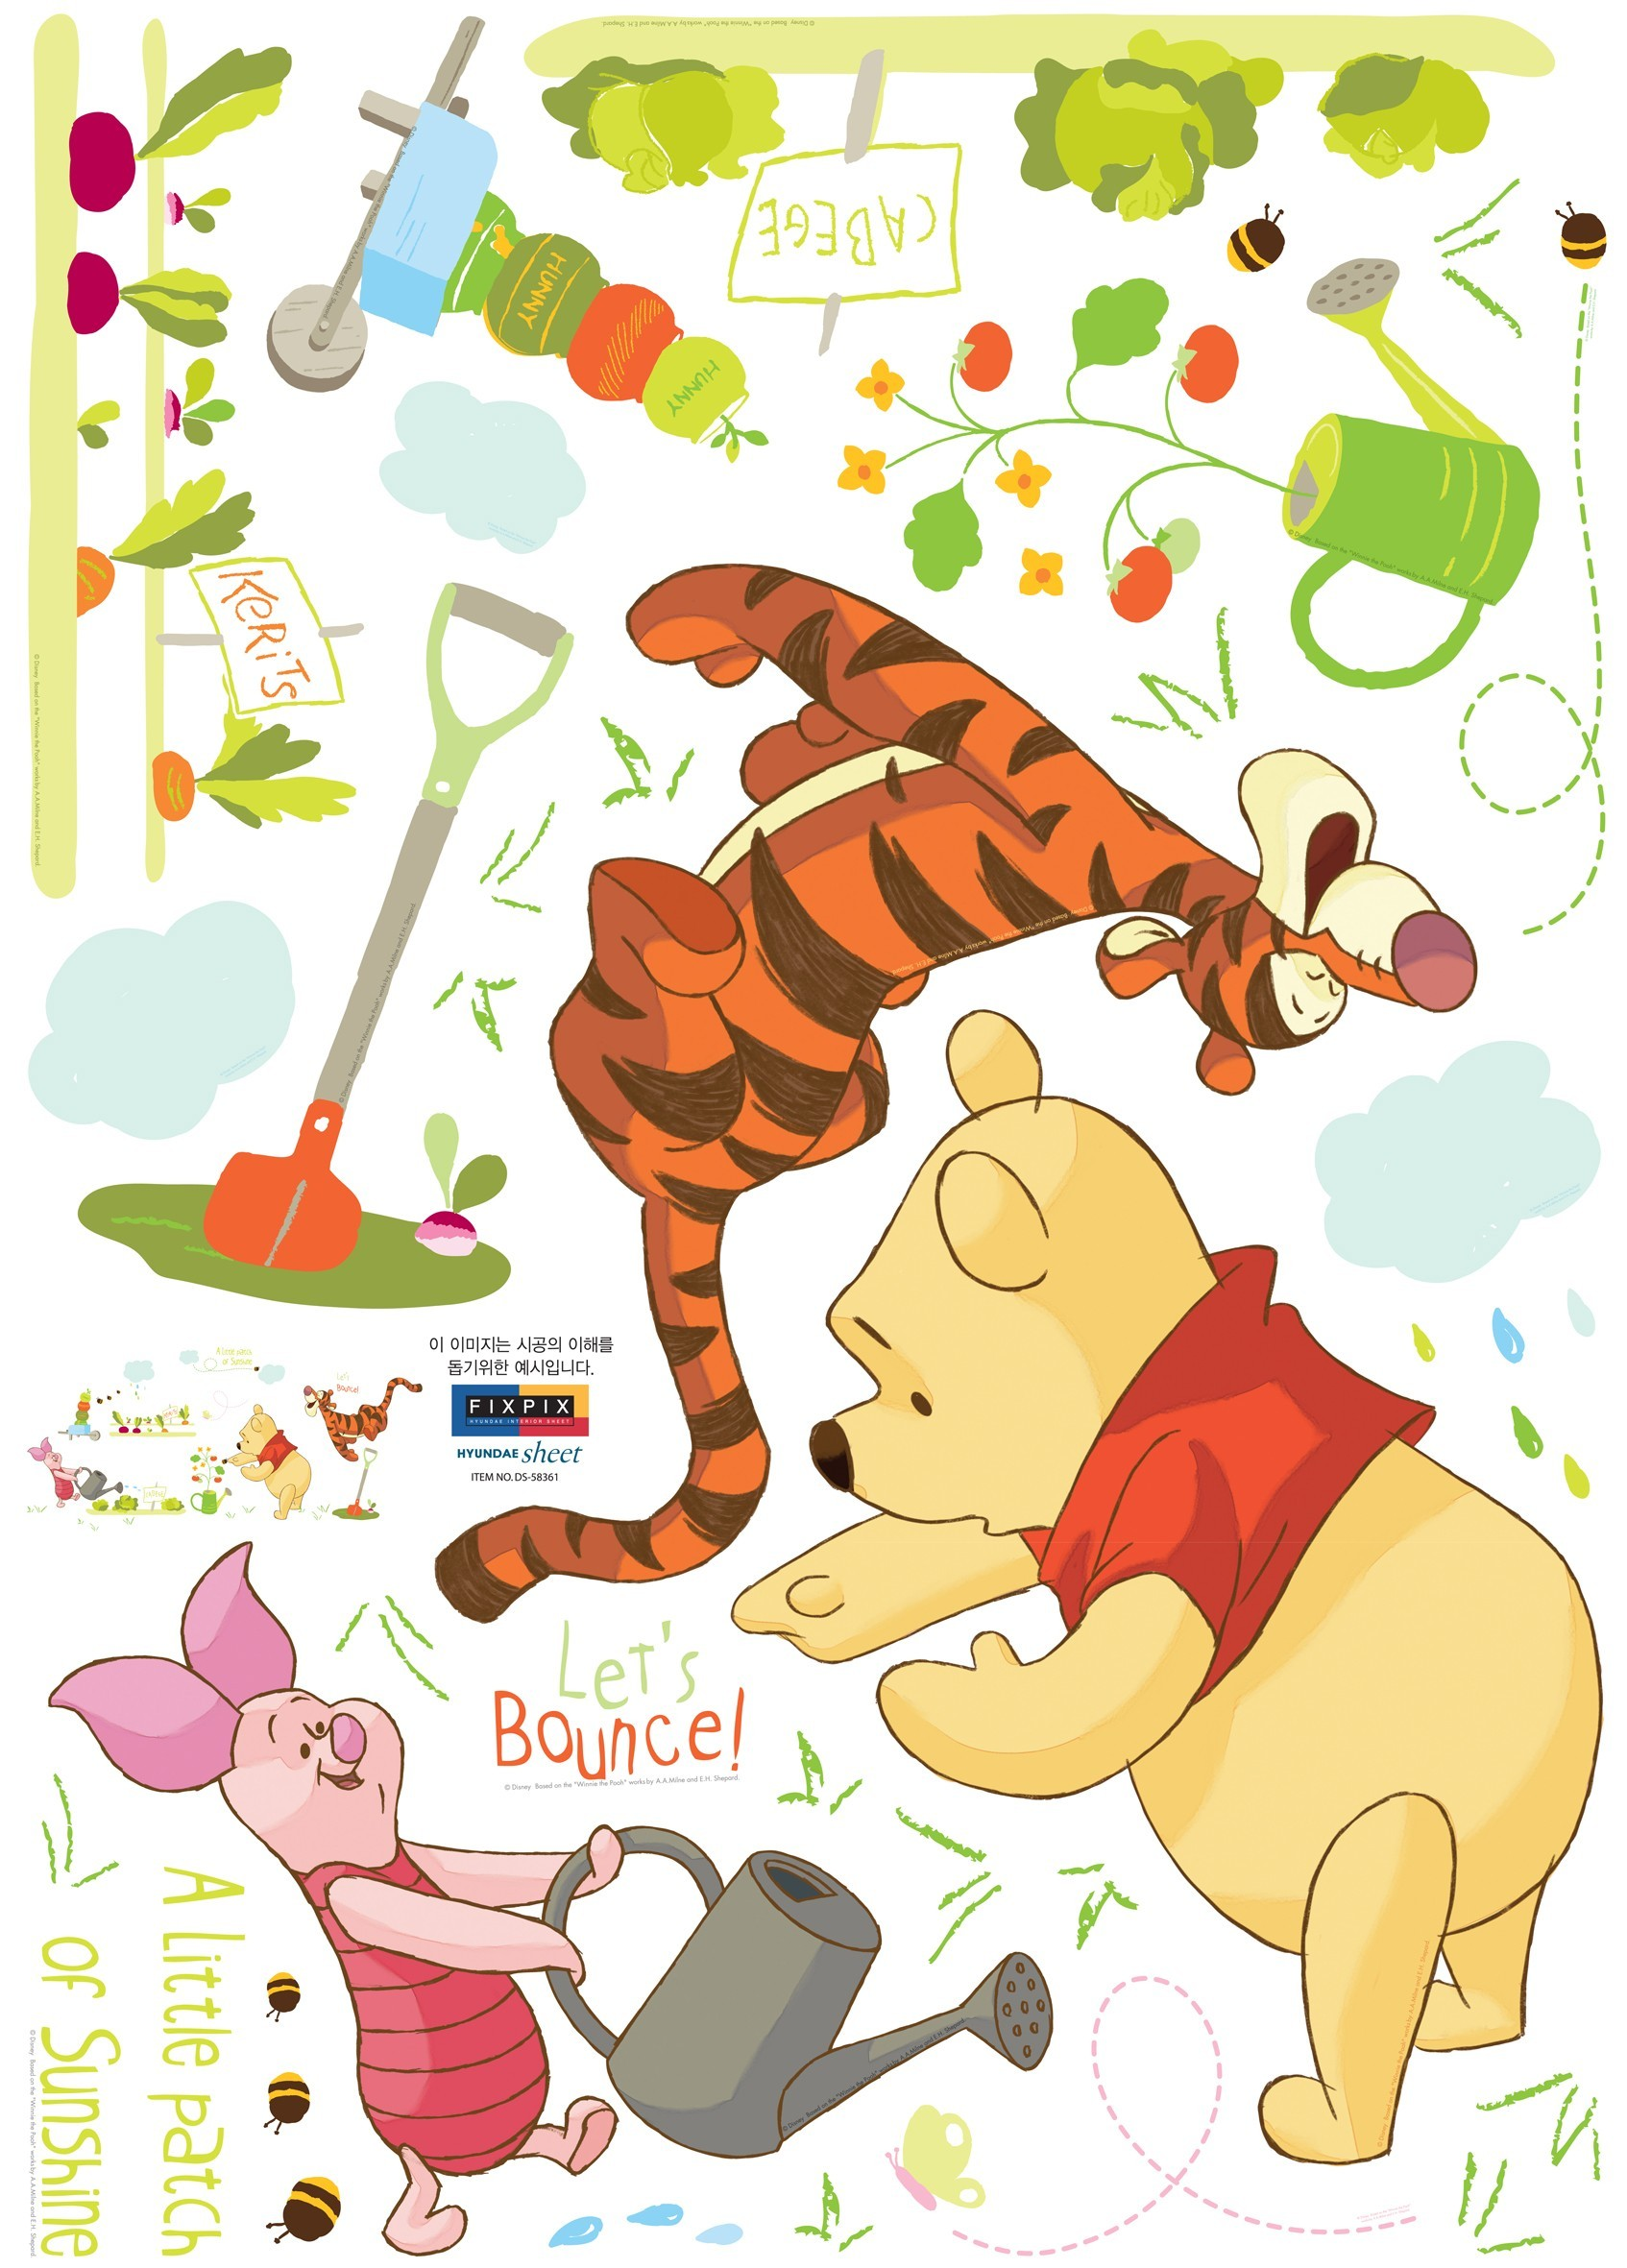 Wallpaper Dinding Bahan Vinyl Paling Baik Untuk Wallsticker Dinding Gardening Pooh Ds Of Wallpaper Dinding Bahan Vinyl Terbaru Untuk Pin by Muzikkzone On Cool Pinterest